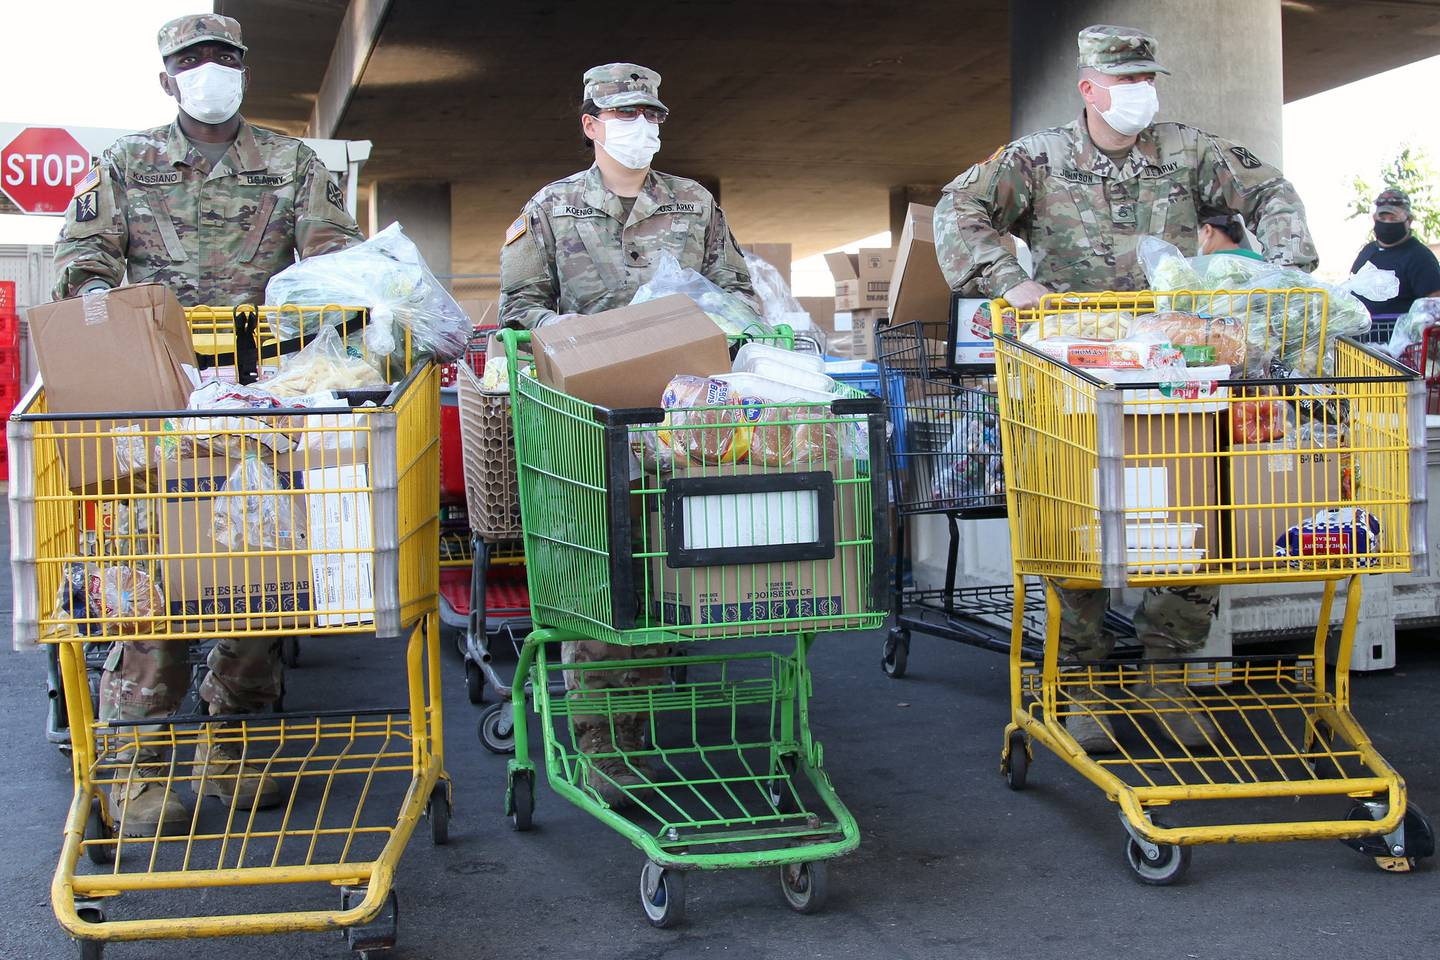 Soldiers with the California National Guard move grocery carts filled with food and await the arrival of recipients on June 26, 2020, at the Stockton/San Joaquin Emergency Food Bank in Stockton, Calif.